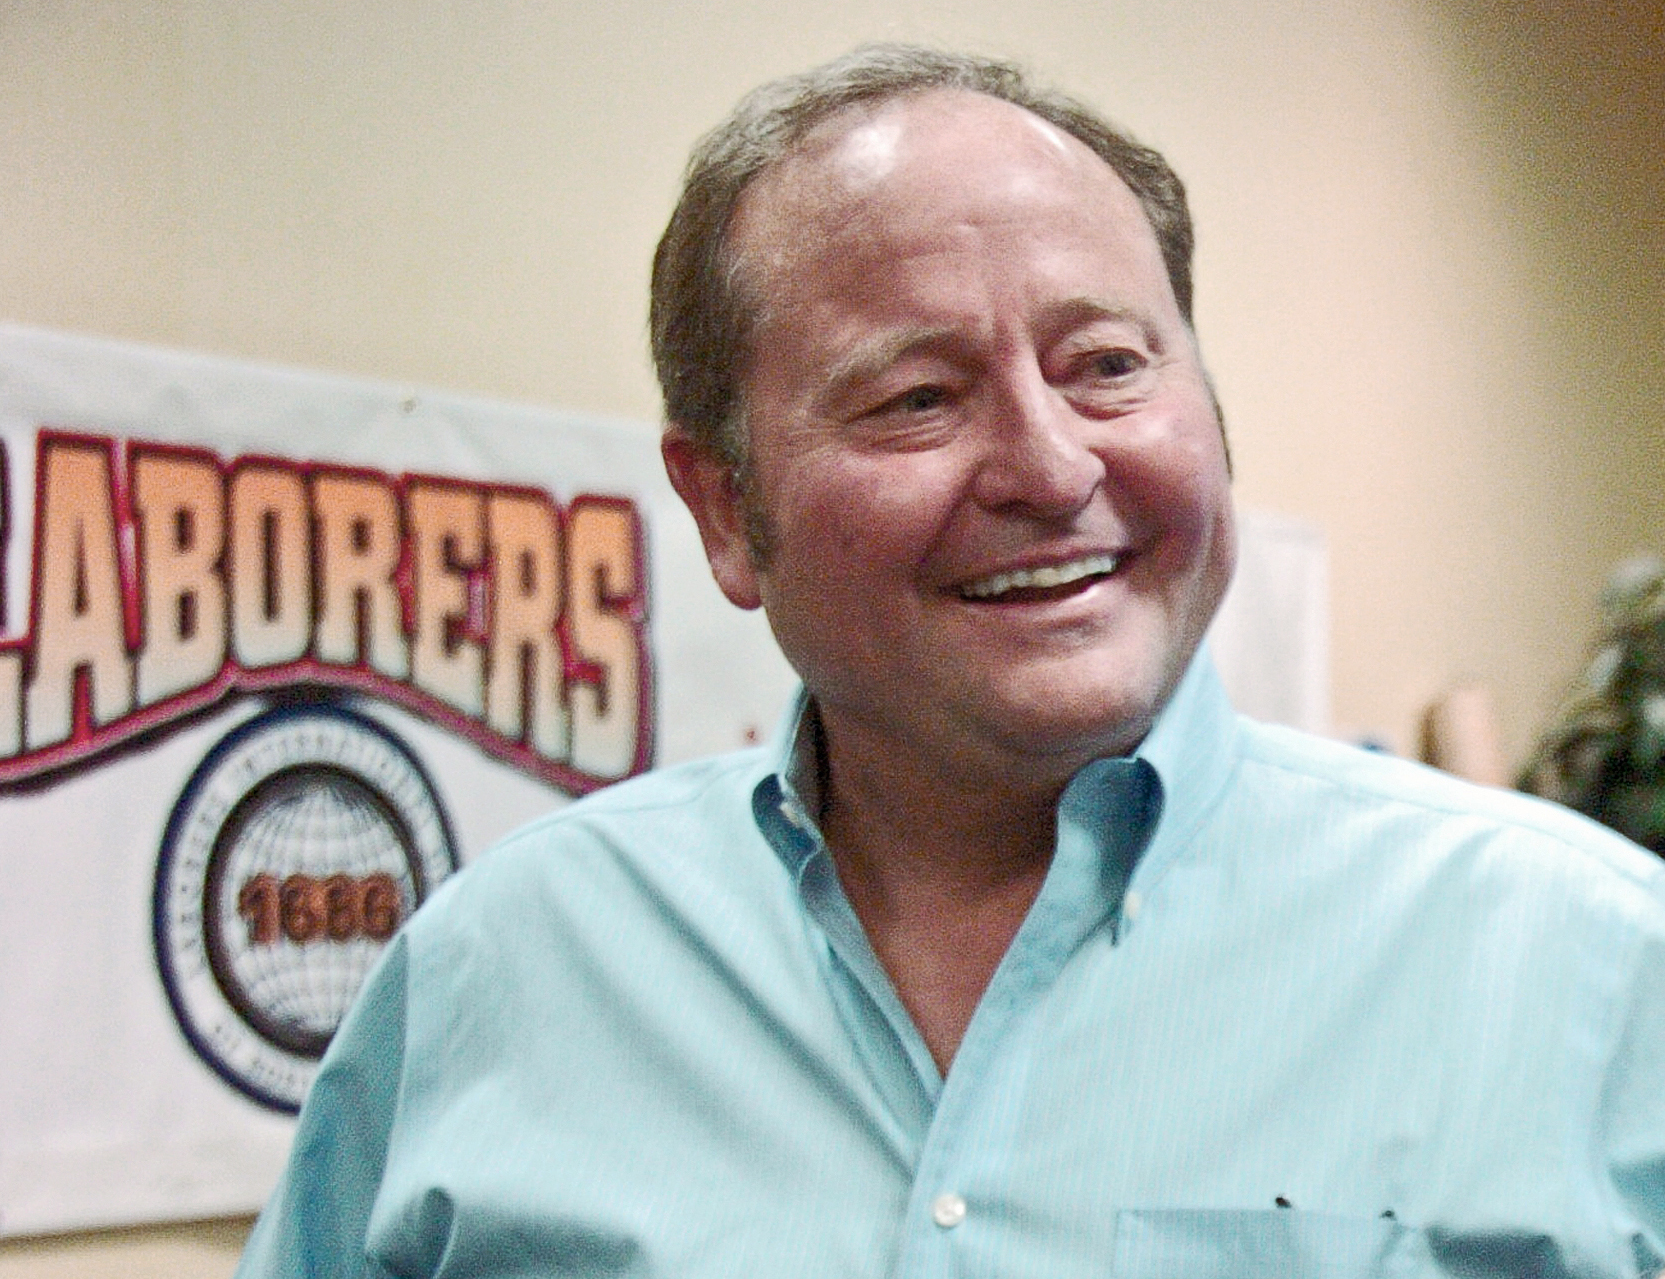 Former Democratic Montana Gov. Brian Schweitzer at the Montana AFL-CIO annual convention in Billings, Mont. on May 10, 2013